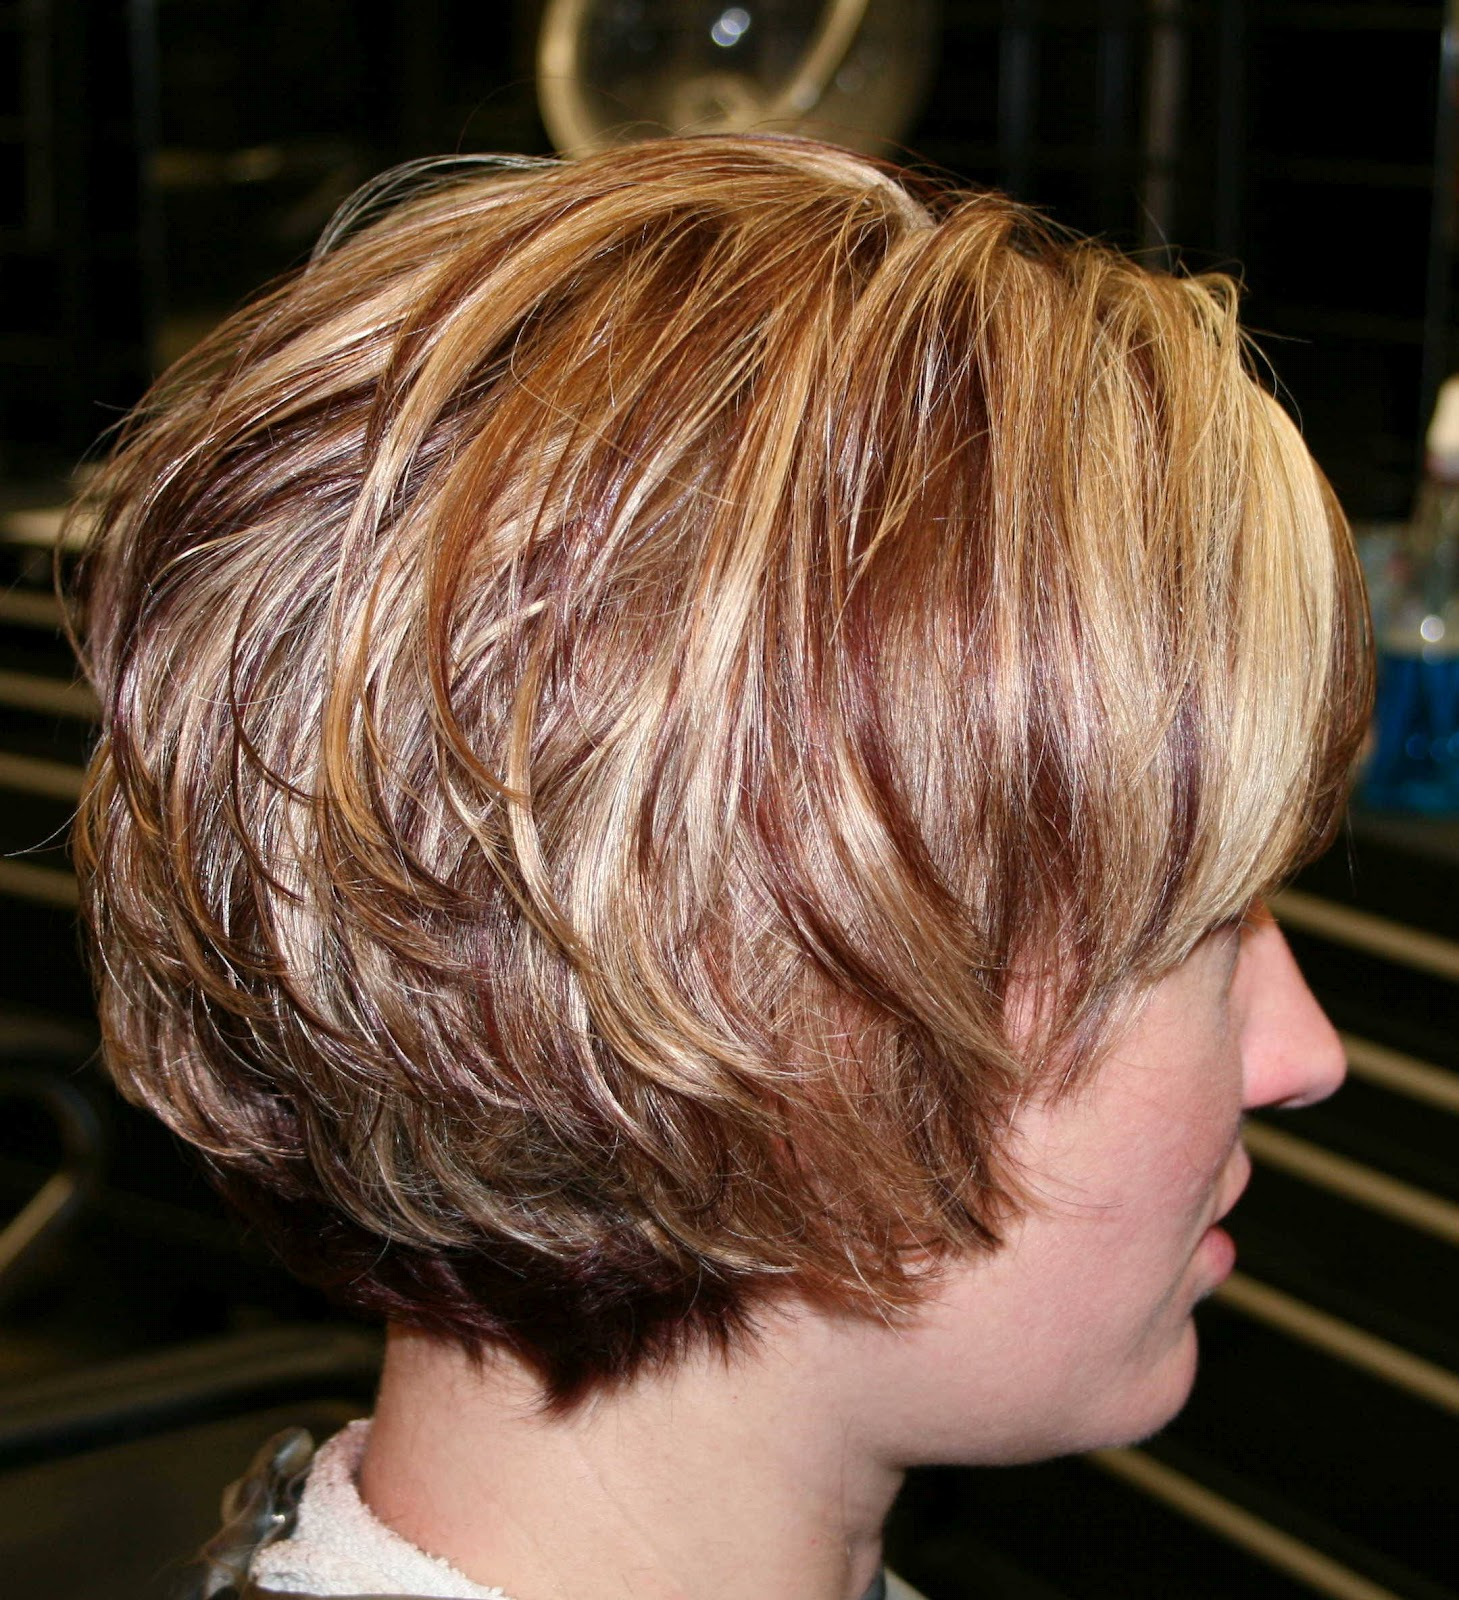 Latest Hair Styles: Short Haircuts for 2012, Angled and Layered Bob Hairstyle